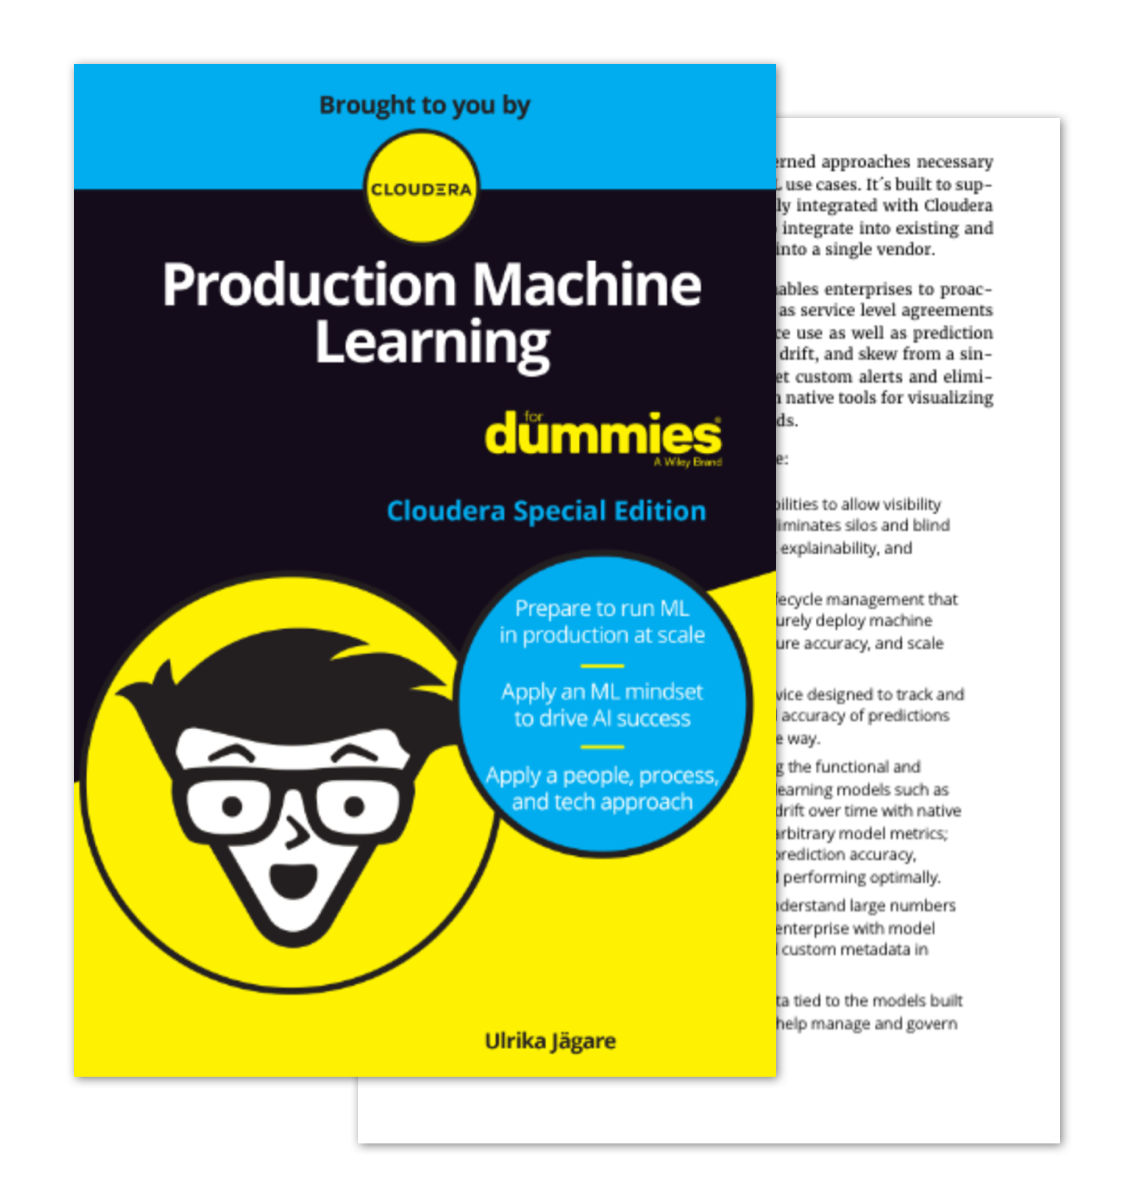 Thumbnail of production machine learning for dummies